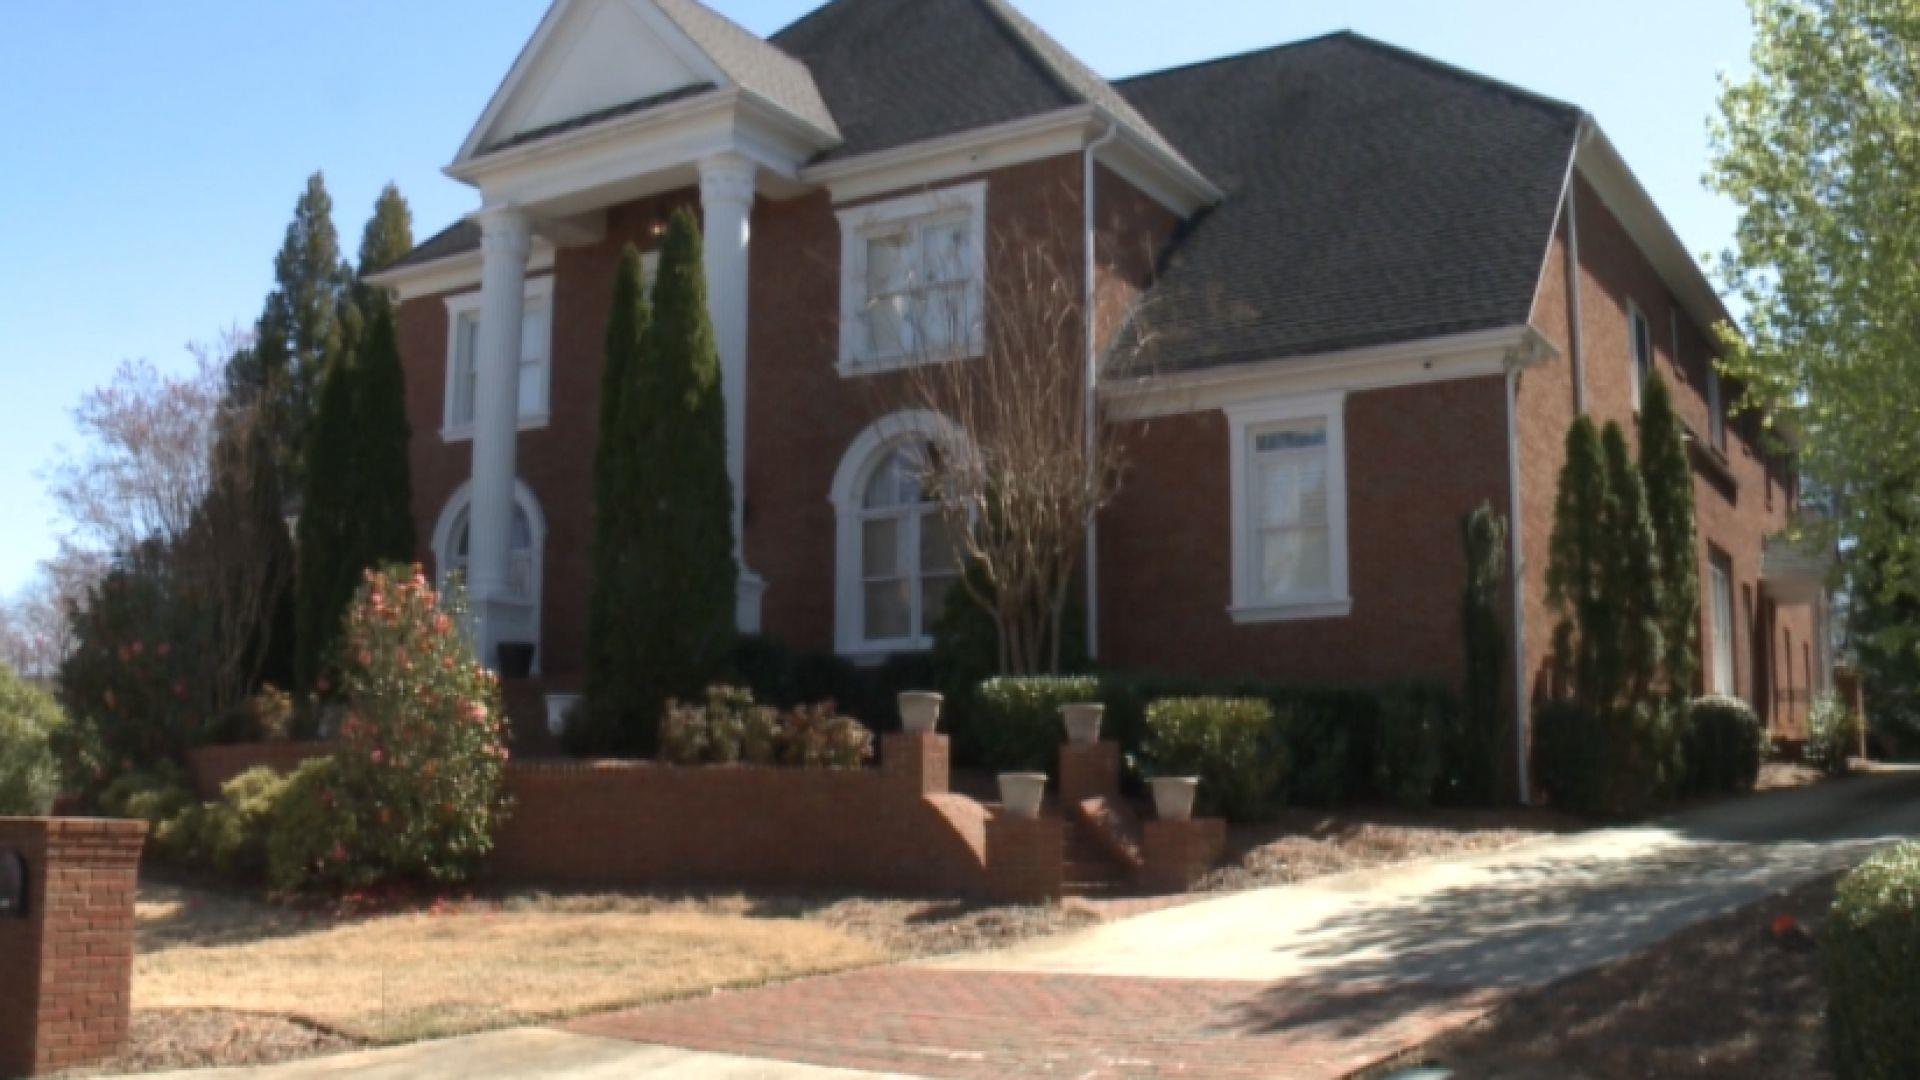 Man Arrested After 8 Women Found Captive in Luxury Georgia